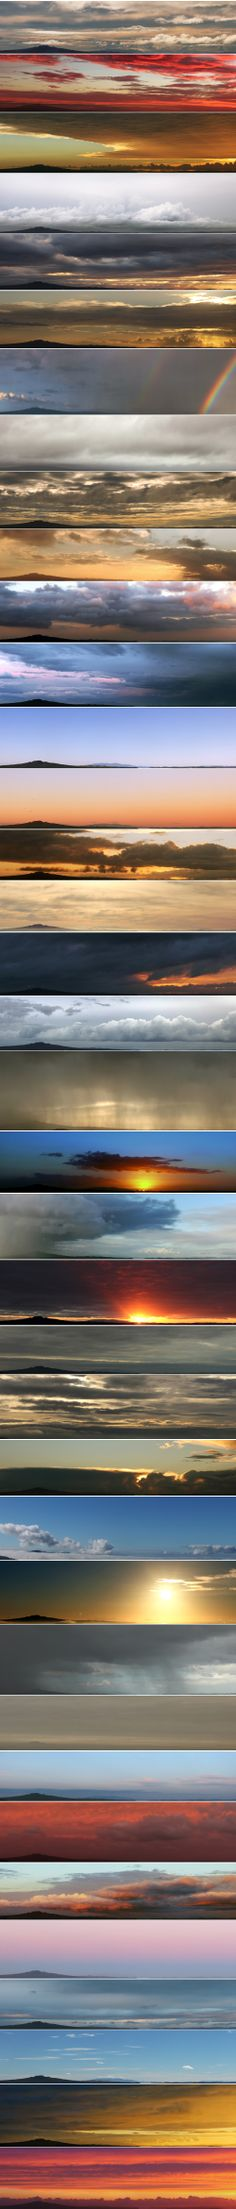 One Year Weather Photography Over Rangitoto: This is a collage of 37 panoramas I took over the past 12 months, always from the same viewpoint. Rangitoto is a volcanic island near #Auckland, #NewZealand. Please read the complete post here >>> http://aeimage.wordpress.com/2014/04/05/one-year-of-weather-photography-over-rangitoto/